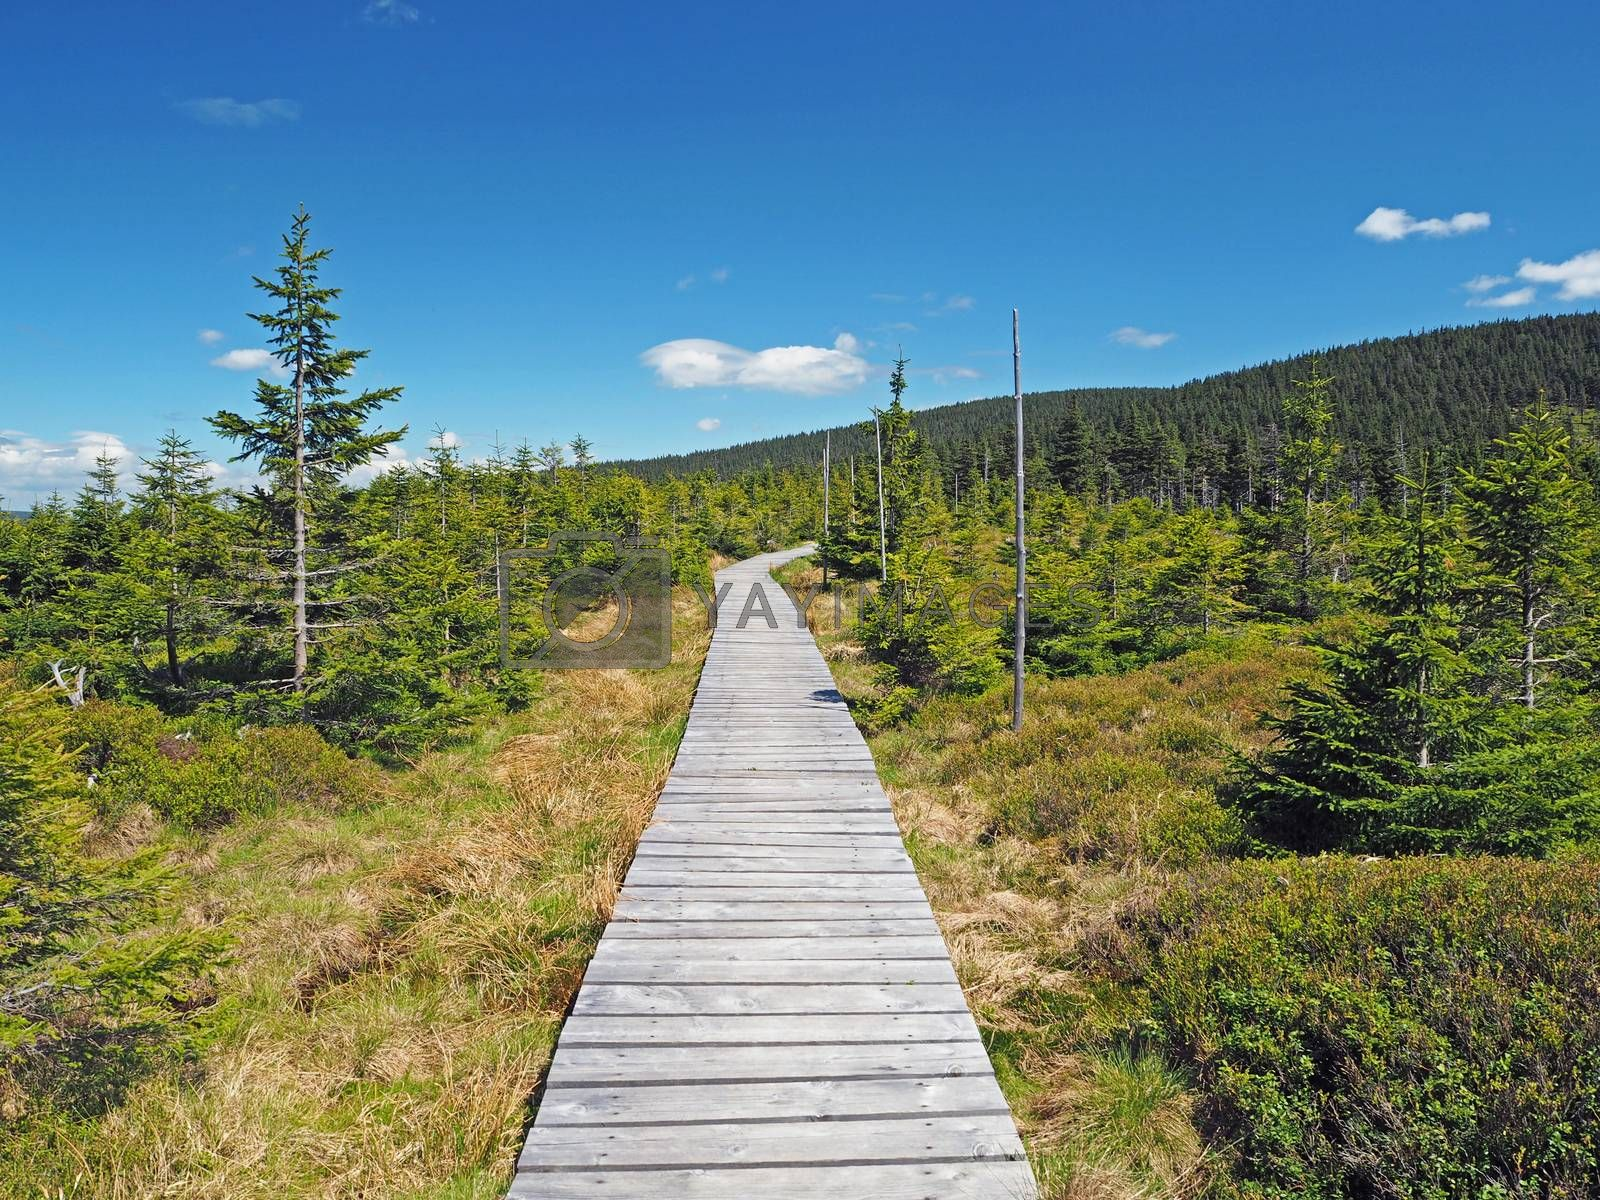 wooden plank footpath in Jeseniky mountain national park in spruce tree forest in Czech Republic with blue sky